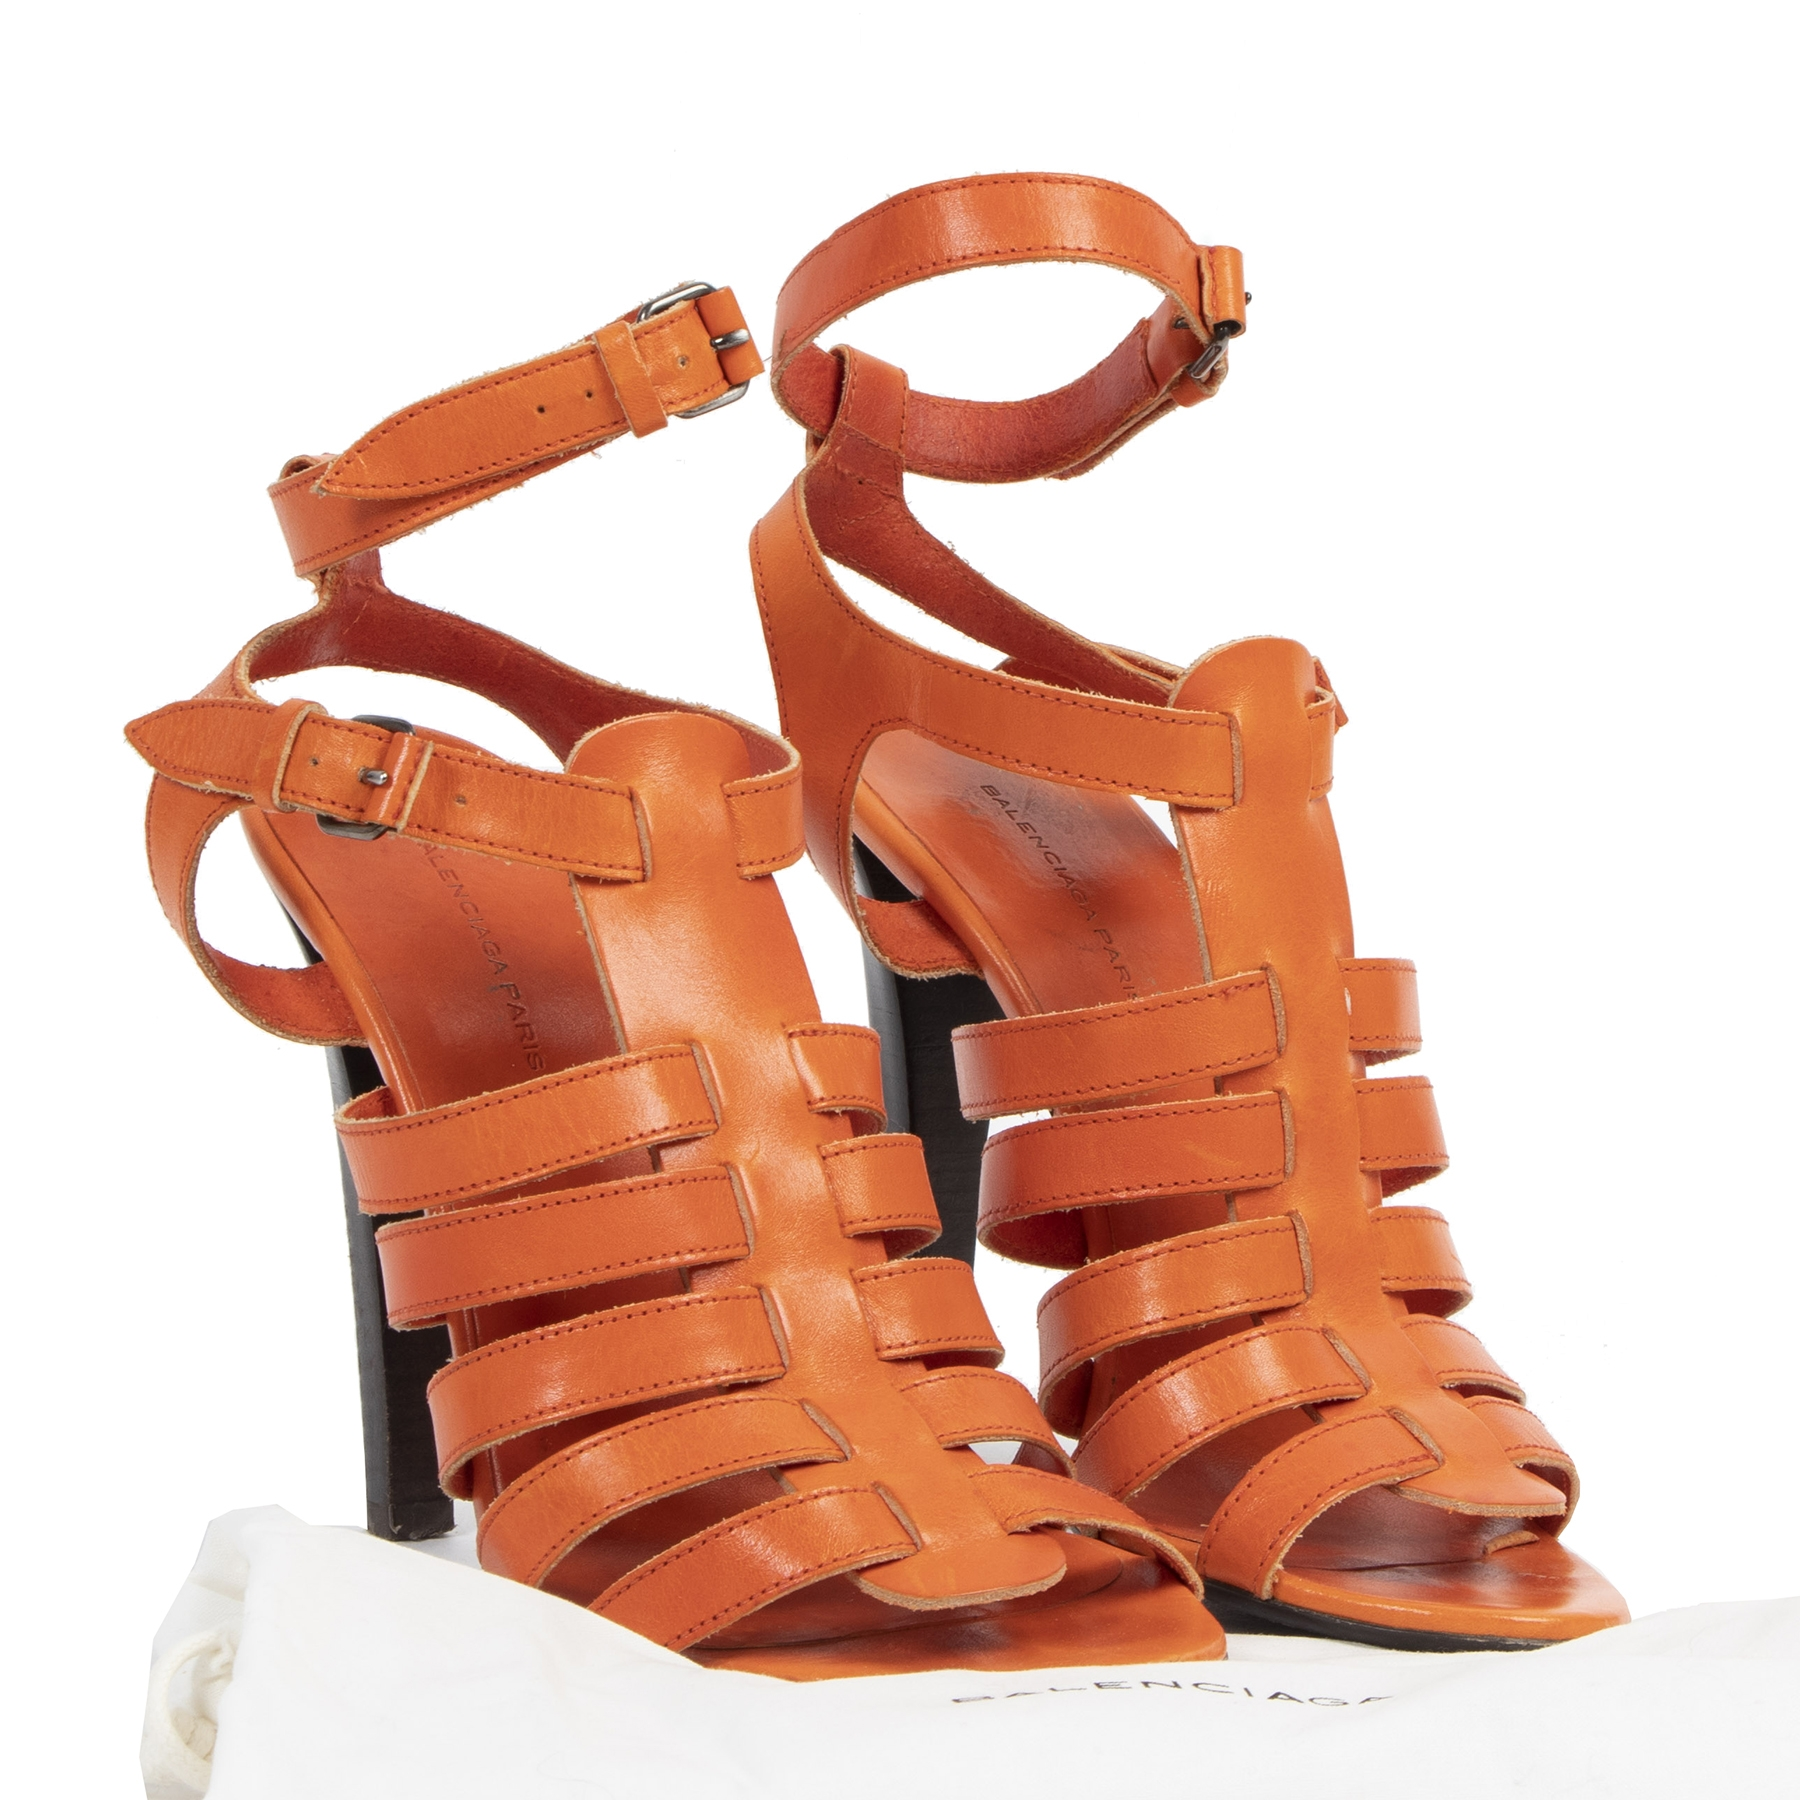 Are you looking for an authentic Balenciaga Gladiator Orange Sandals